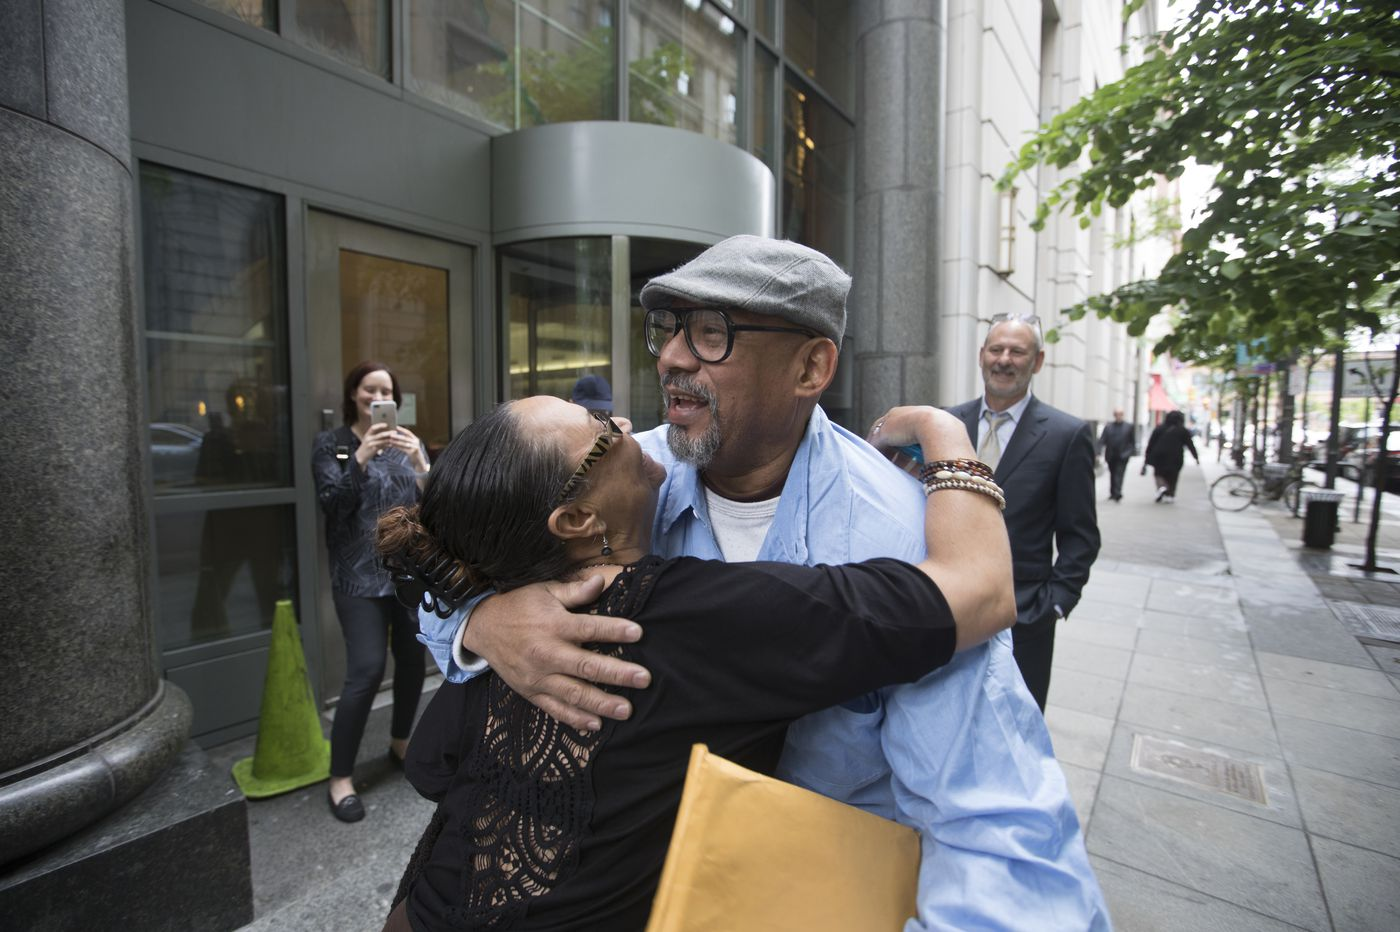 Philly man freed from 28 years on death row after finding of prosecutor's misconduct